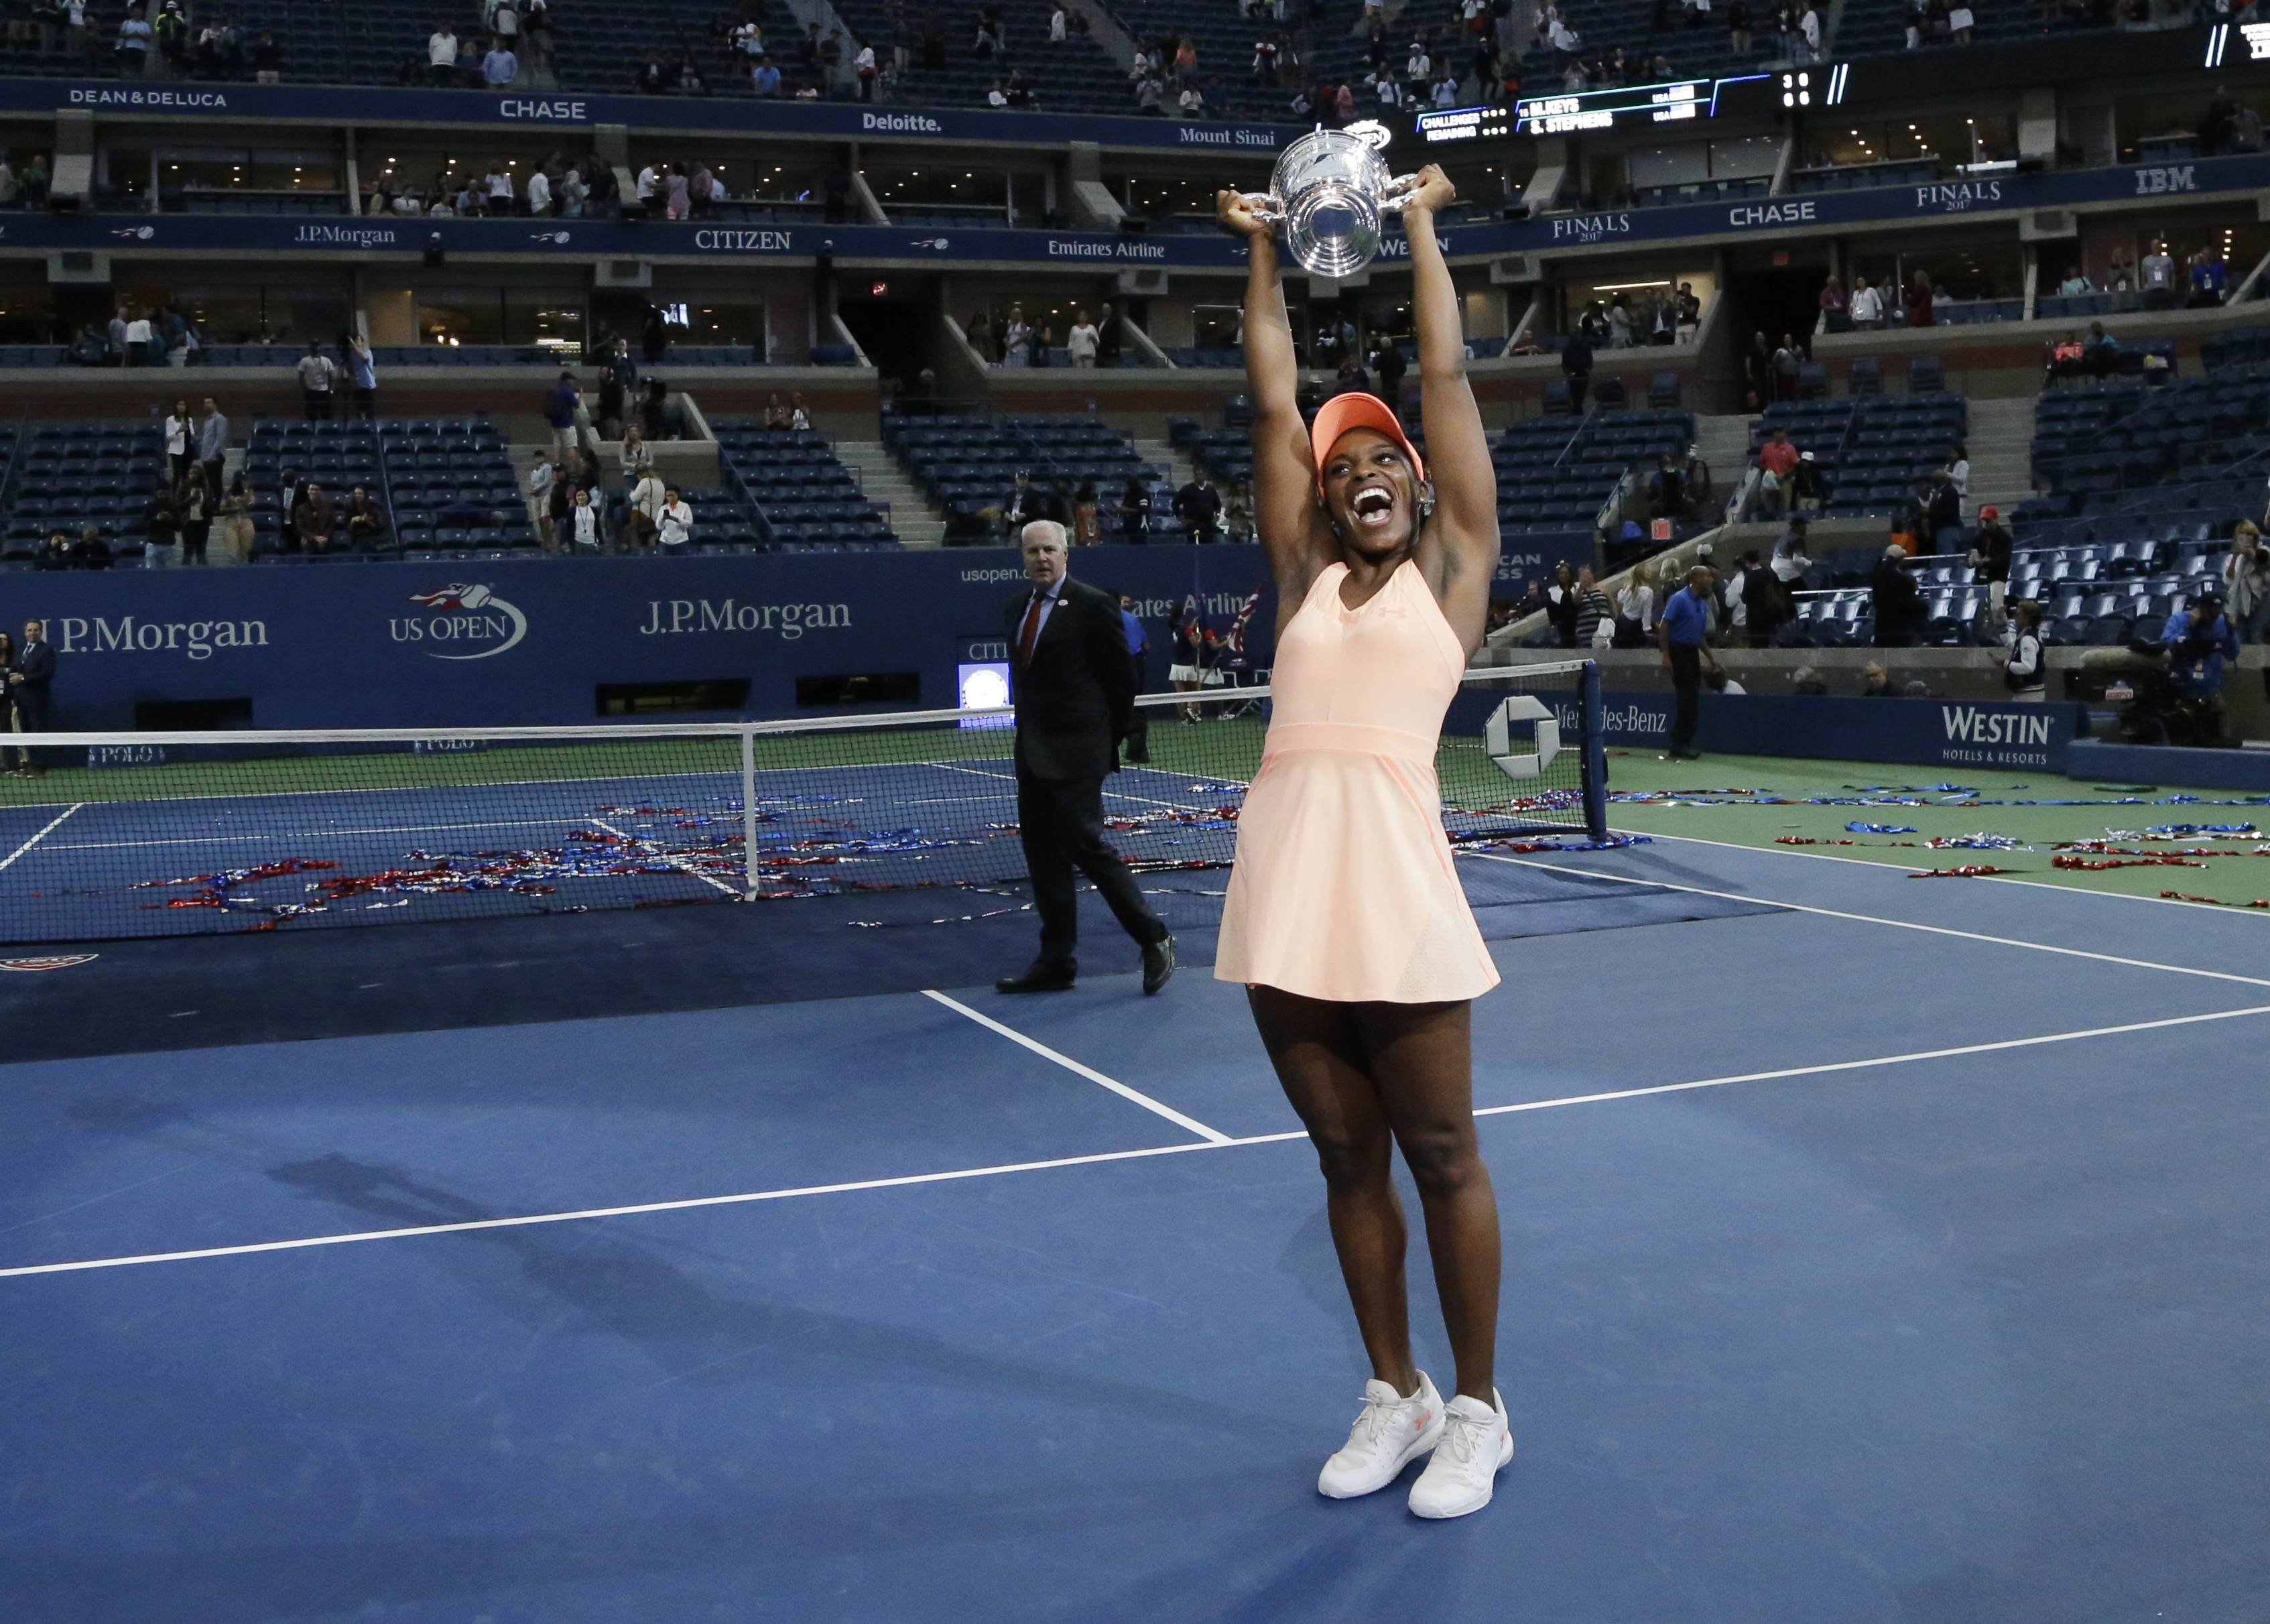 Sloane Stephens, of the United States, holds up the championship trophy after the women's singles final of the U.S. Open tennis tournament, Saturday, Sept. 9, 2017, in New York. Stephens beat Madison Keys, of the United States. (AP Photo/Julio Cortez)